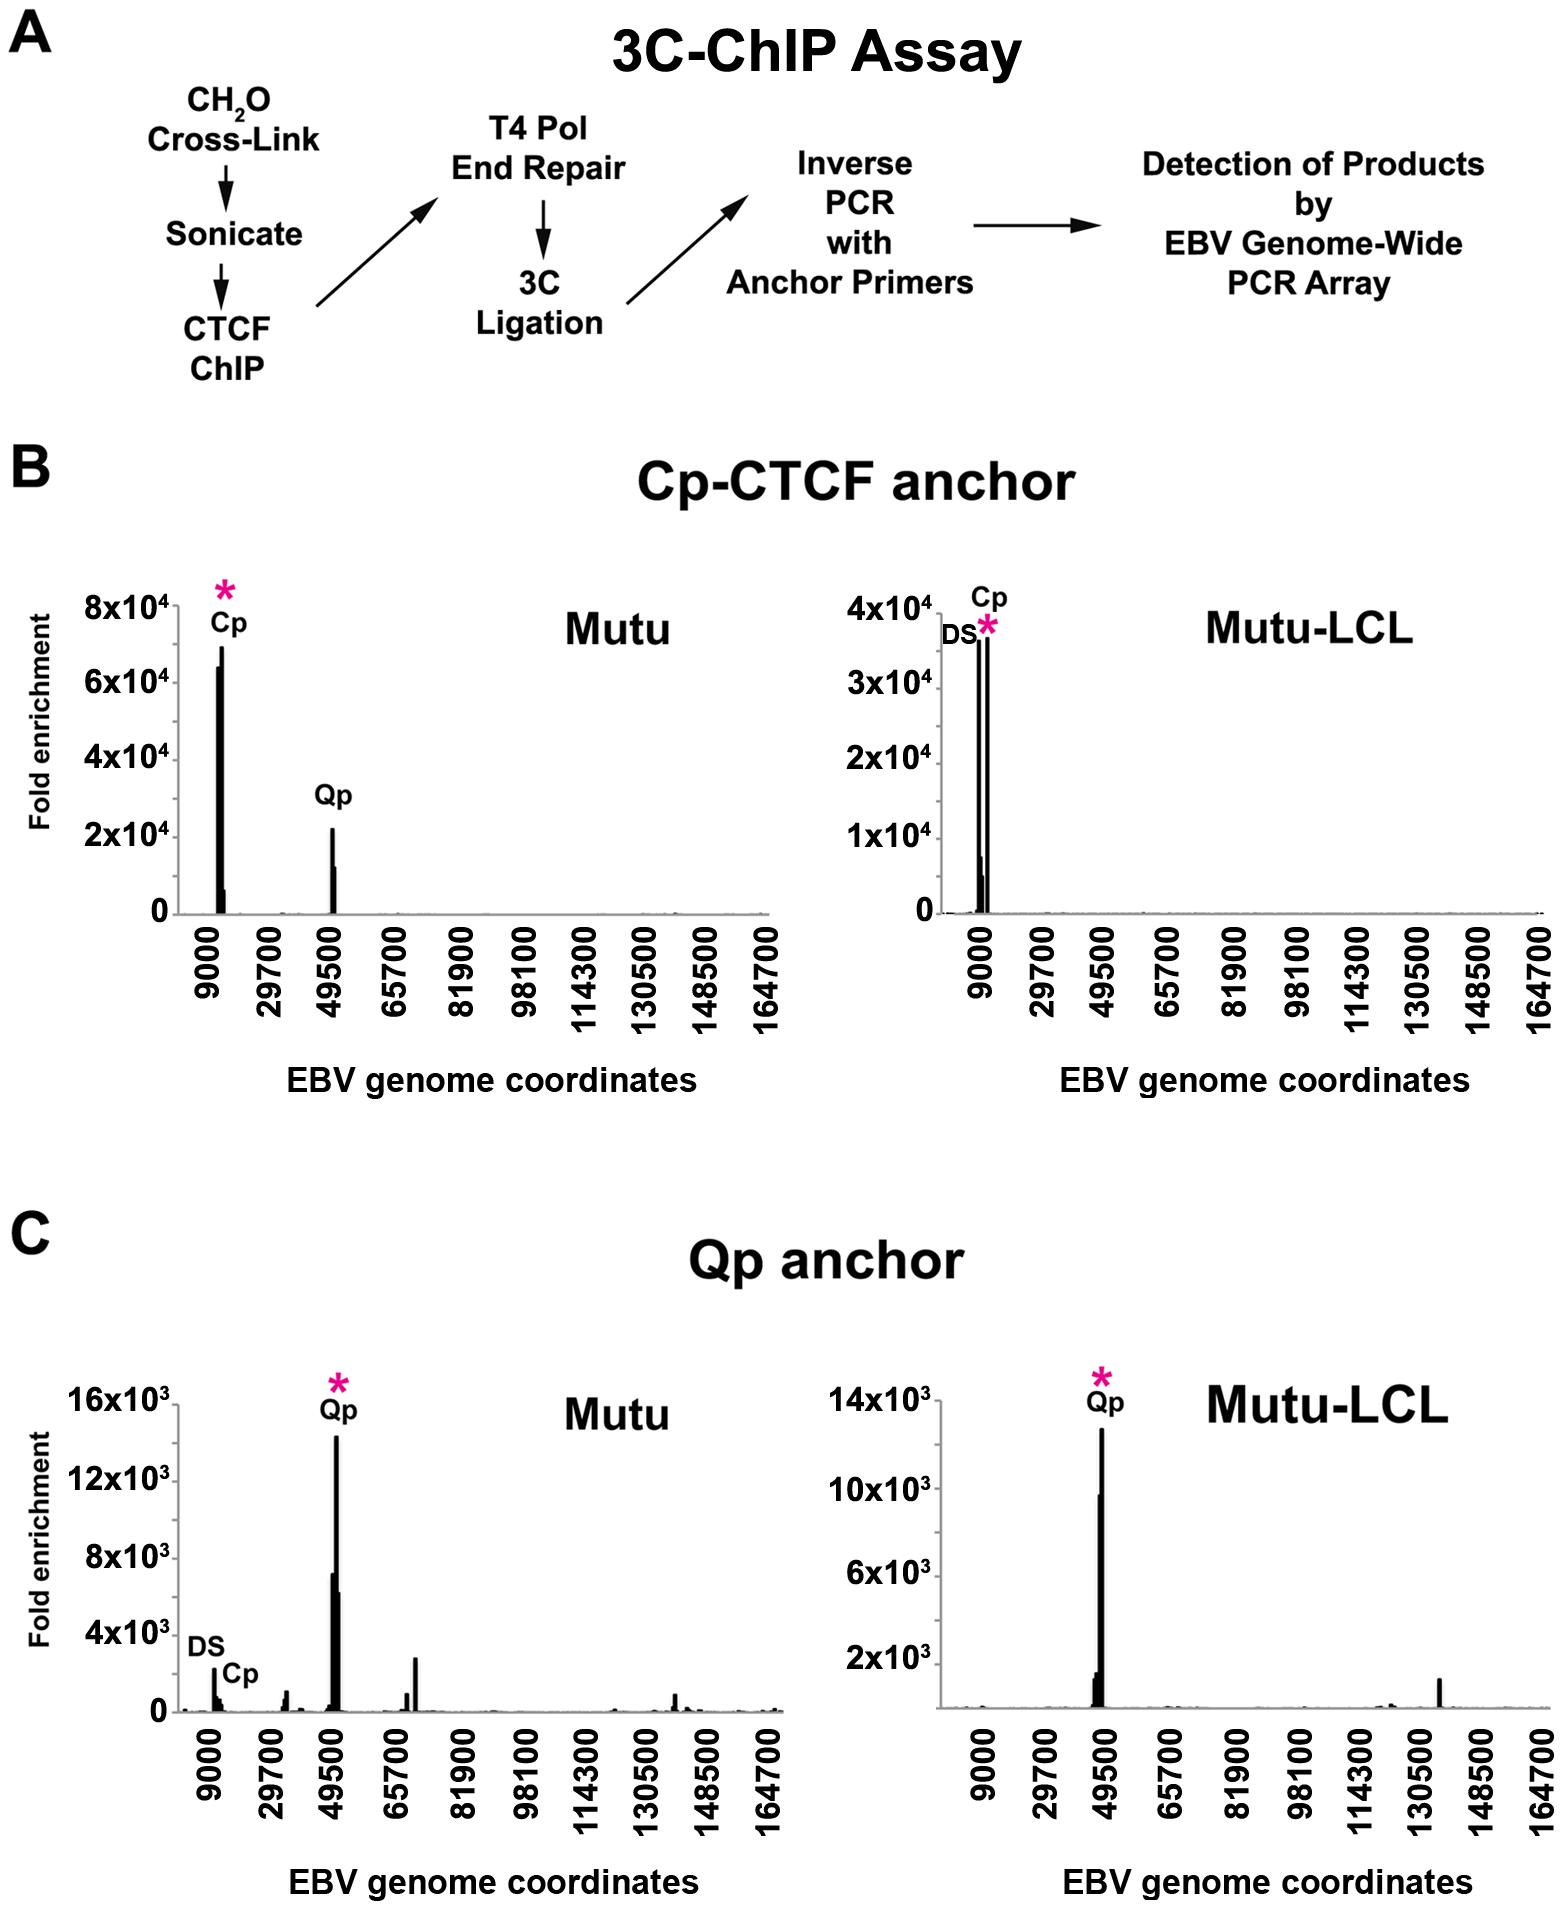 Chromosome Conformation Capture Chromatin Immunoprecipitation (3C-ChIP) analysis shows that CTCF is involved in chromatin looping in EBV.